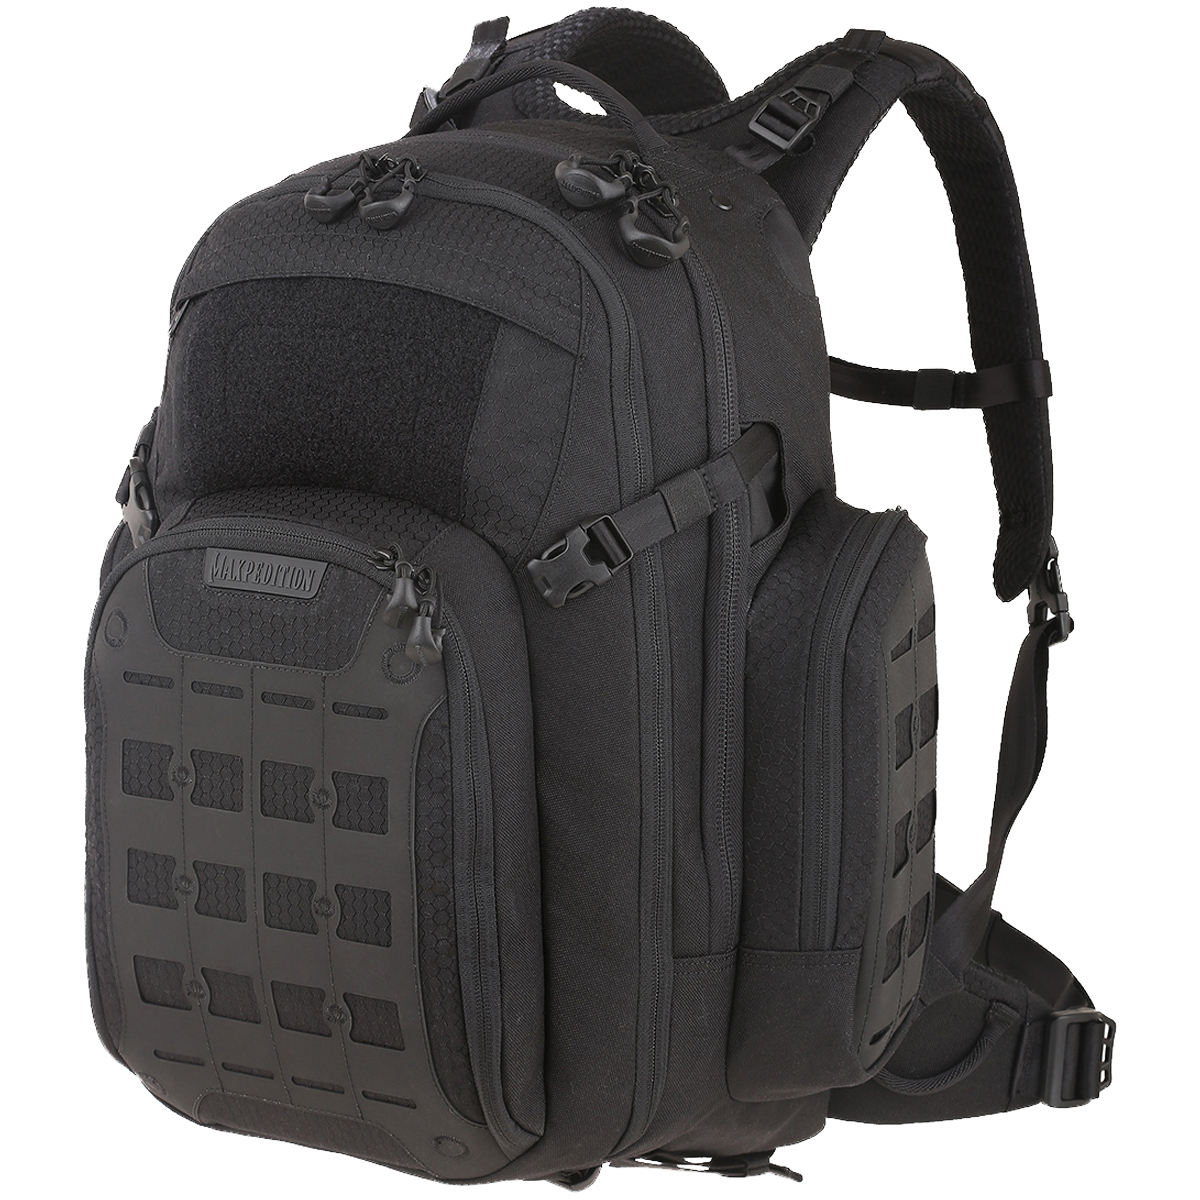 Backpack Black Maxpedition Tiburon Backpack Black Backpacks And Rucksacks